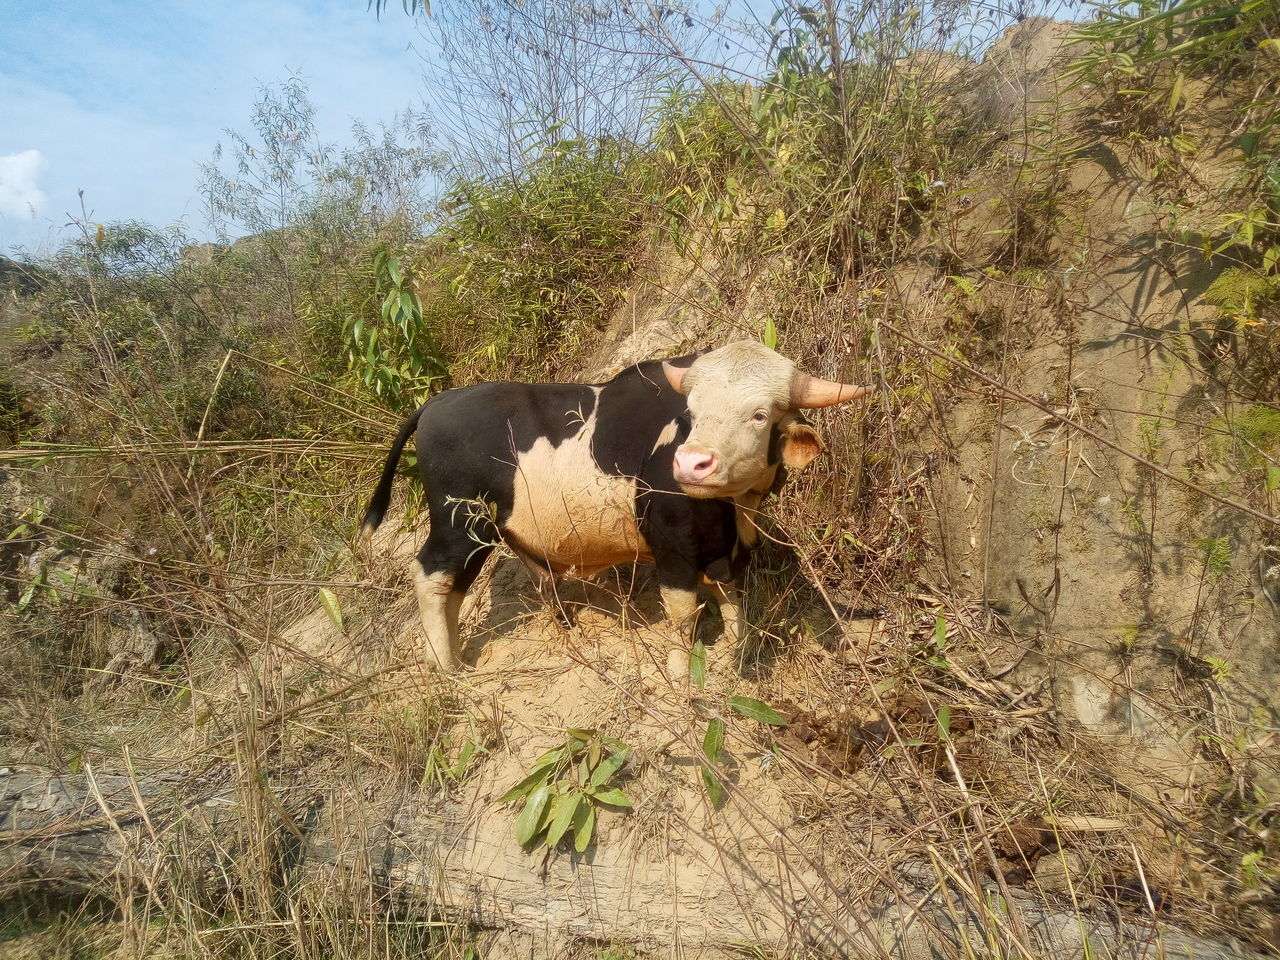 domestic animals, animal themes, cow, one animal, mammal, cattle, field, livestock, no people, day, grass, nature, outdoors, tree, farm animal, pets, sky